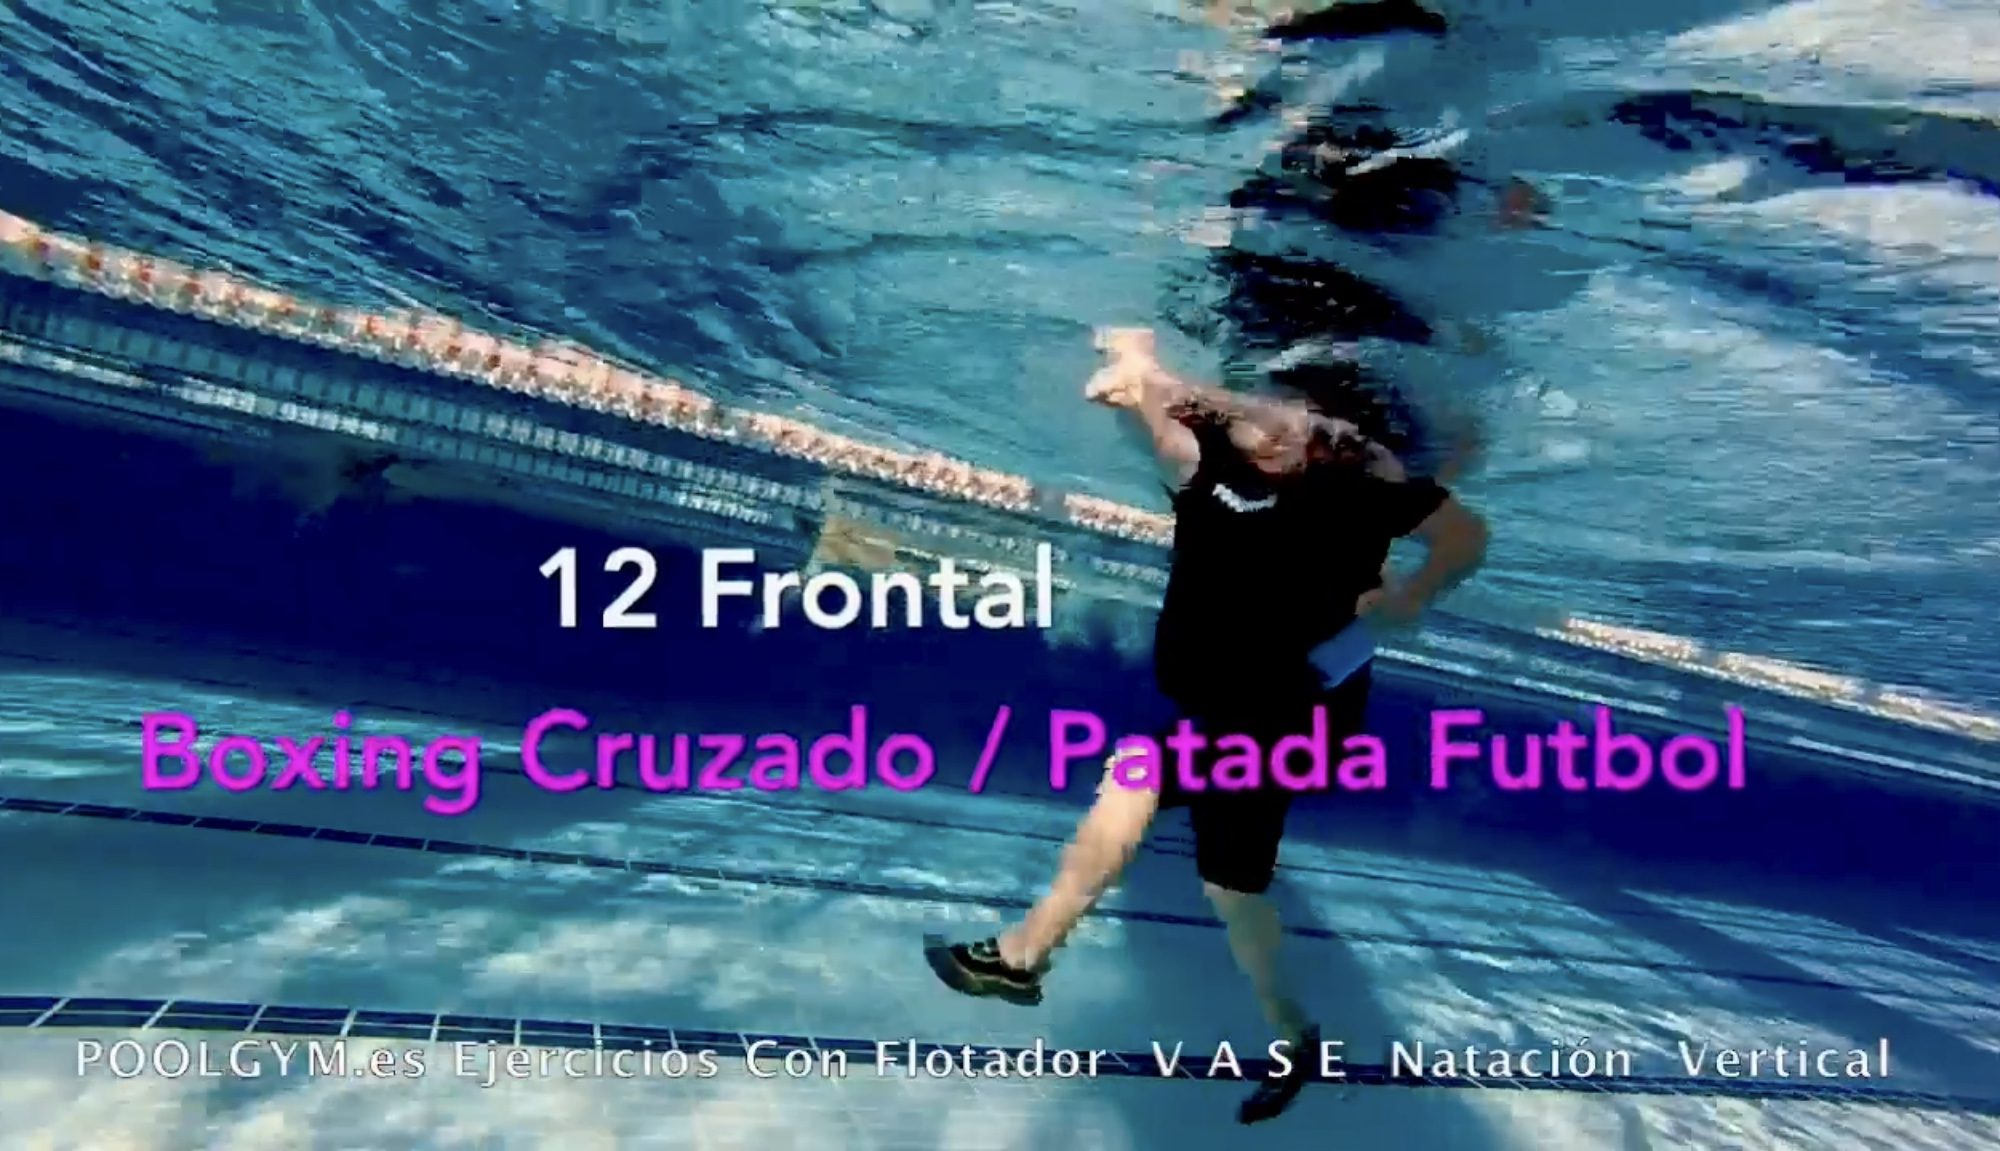 12 Frontal boxing CRUZADO poolgym.ES